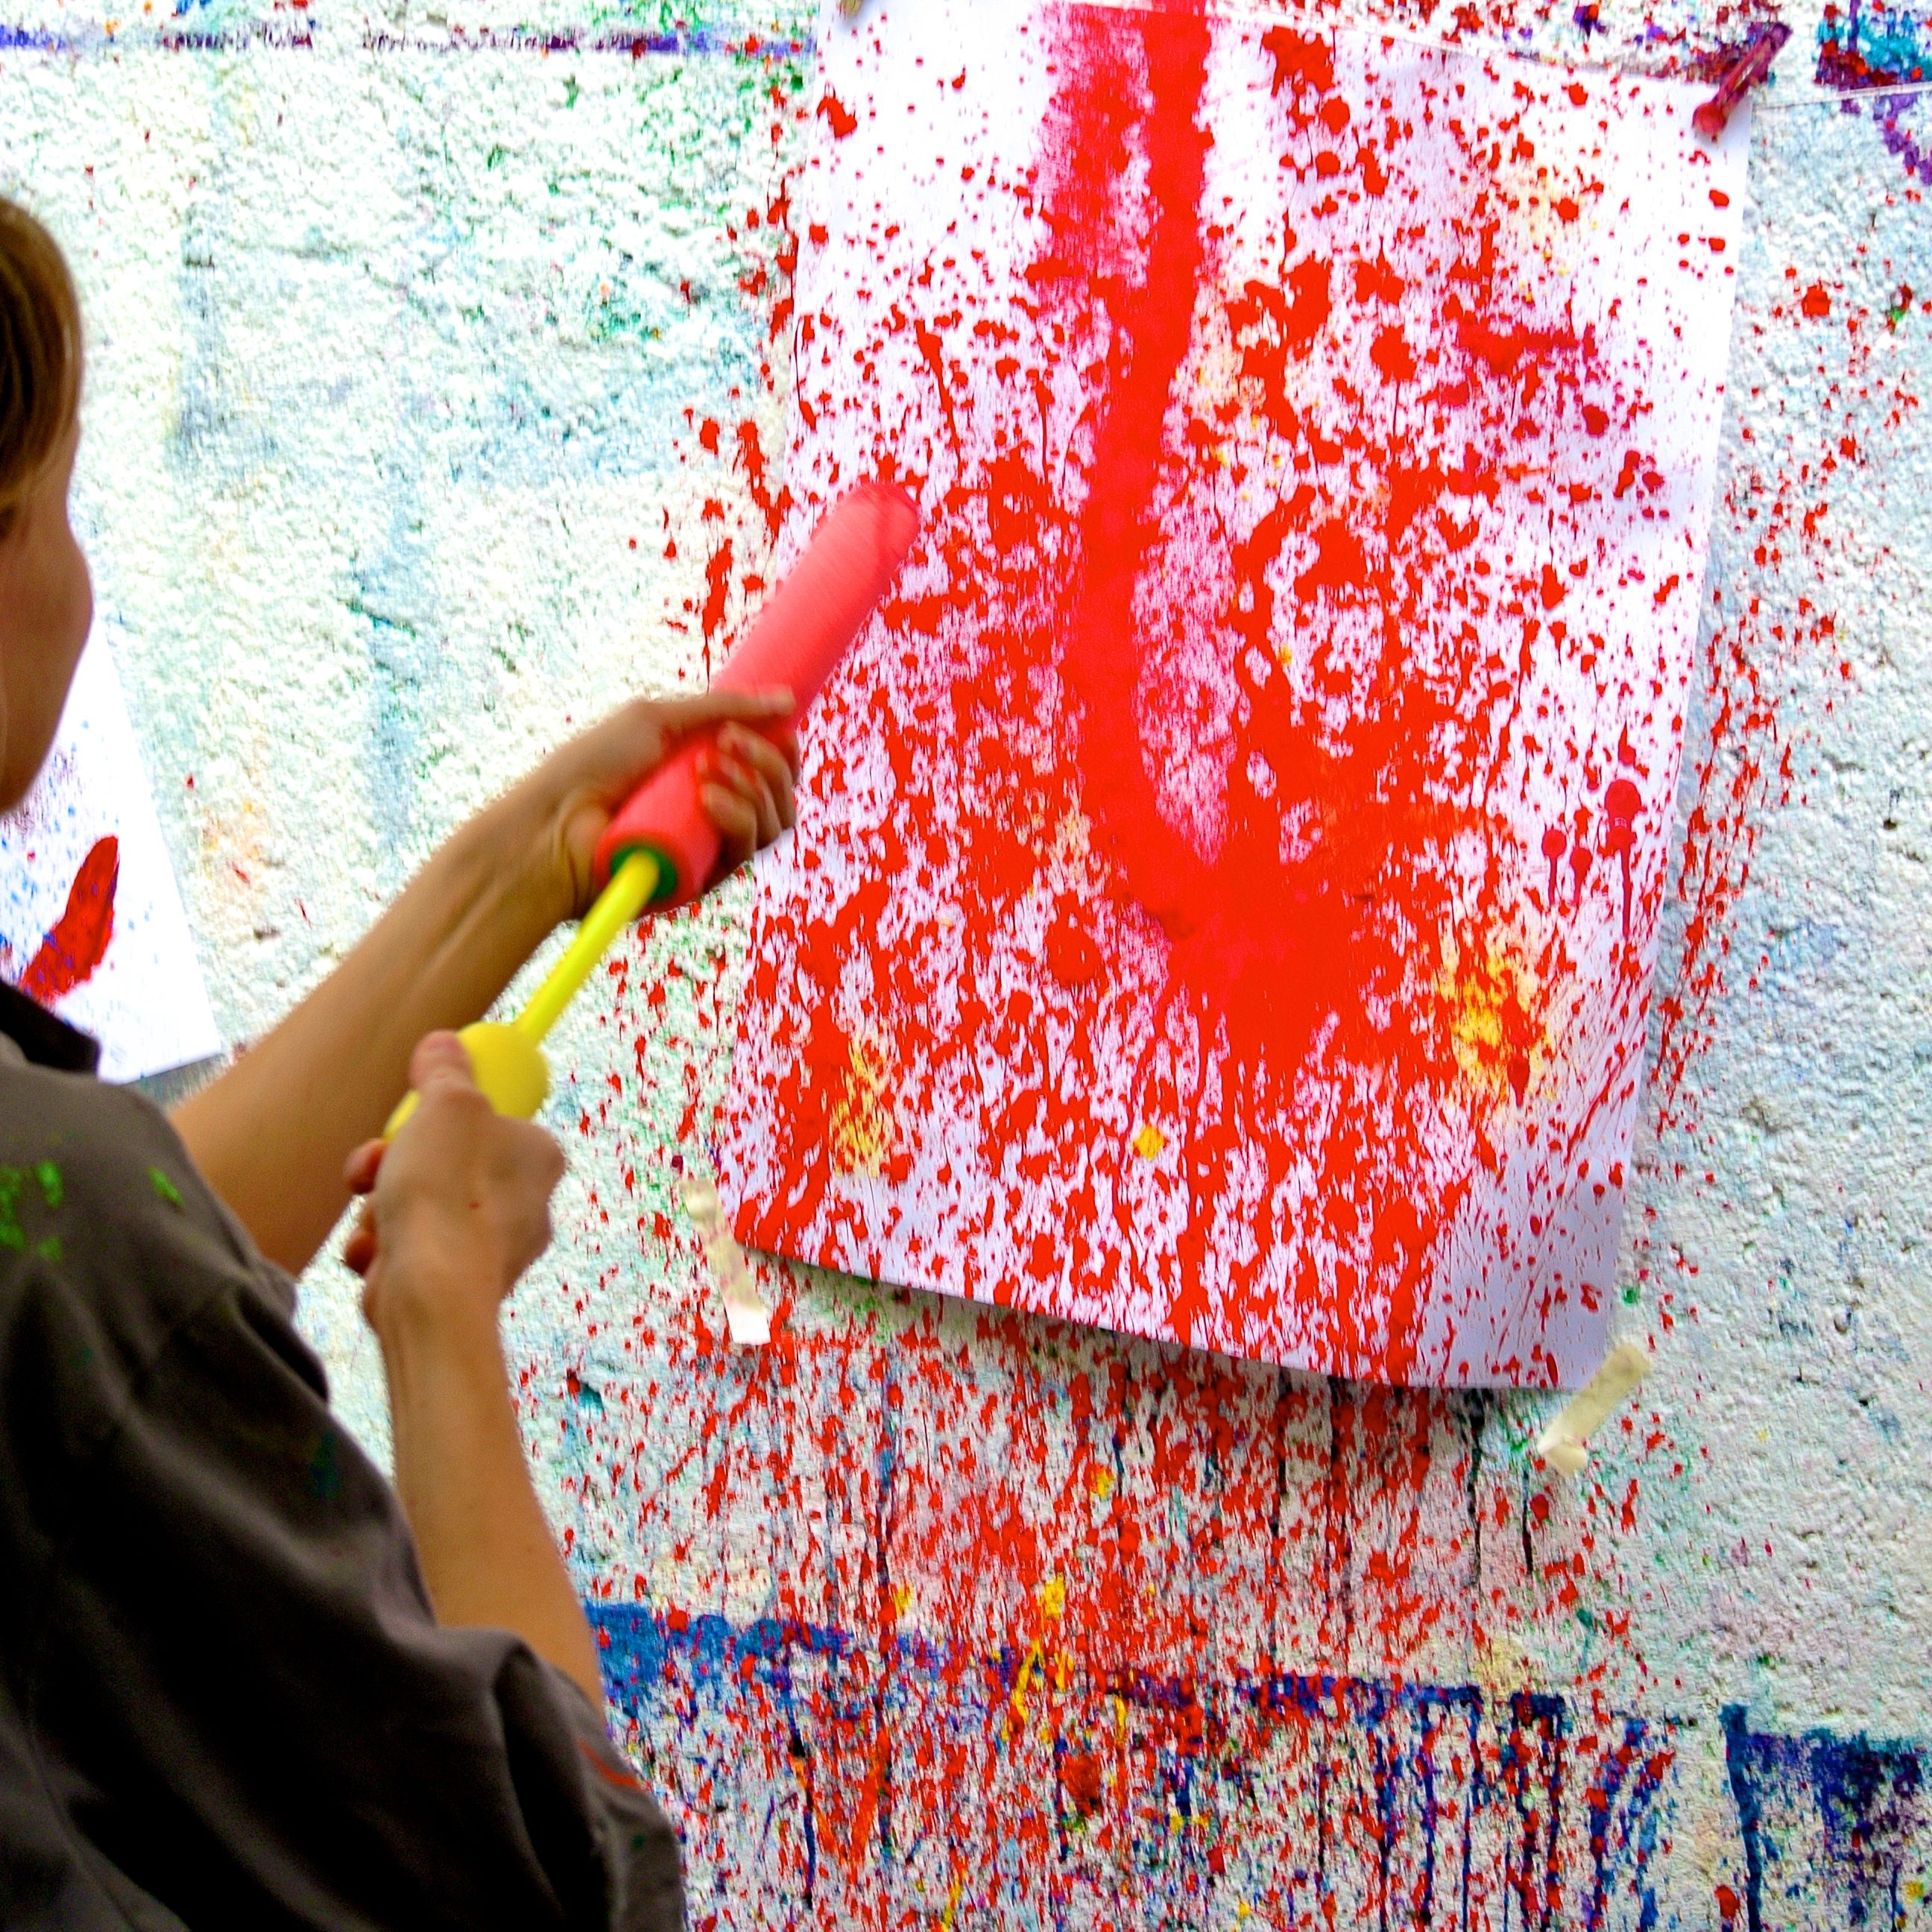 Graffiti oder actionpainting party machwerk kunstprojekte feiern pinterest kunst - Graffiti ideen ...